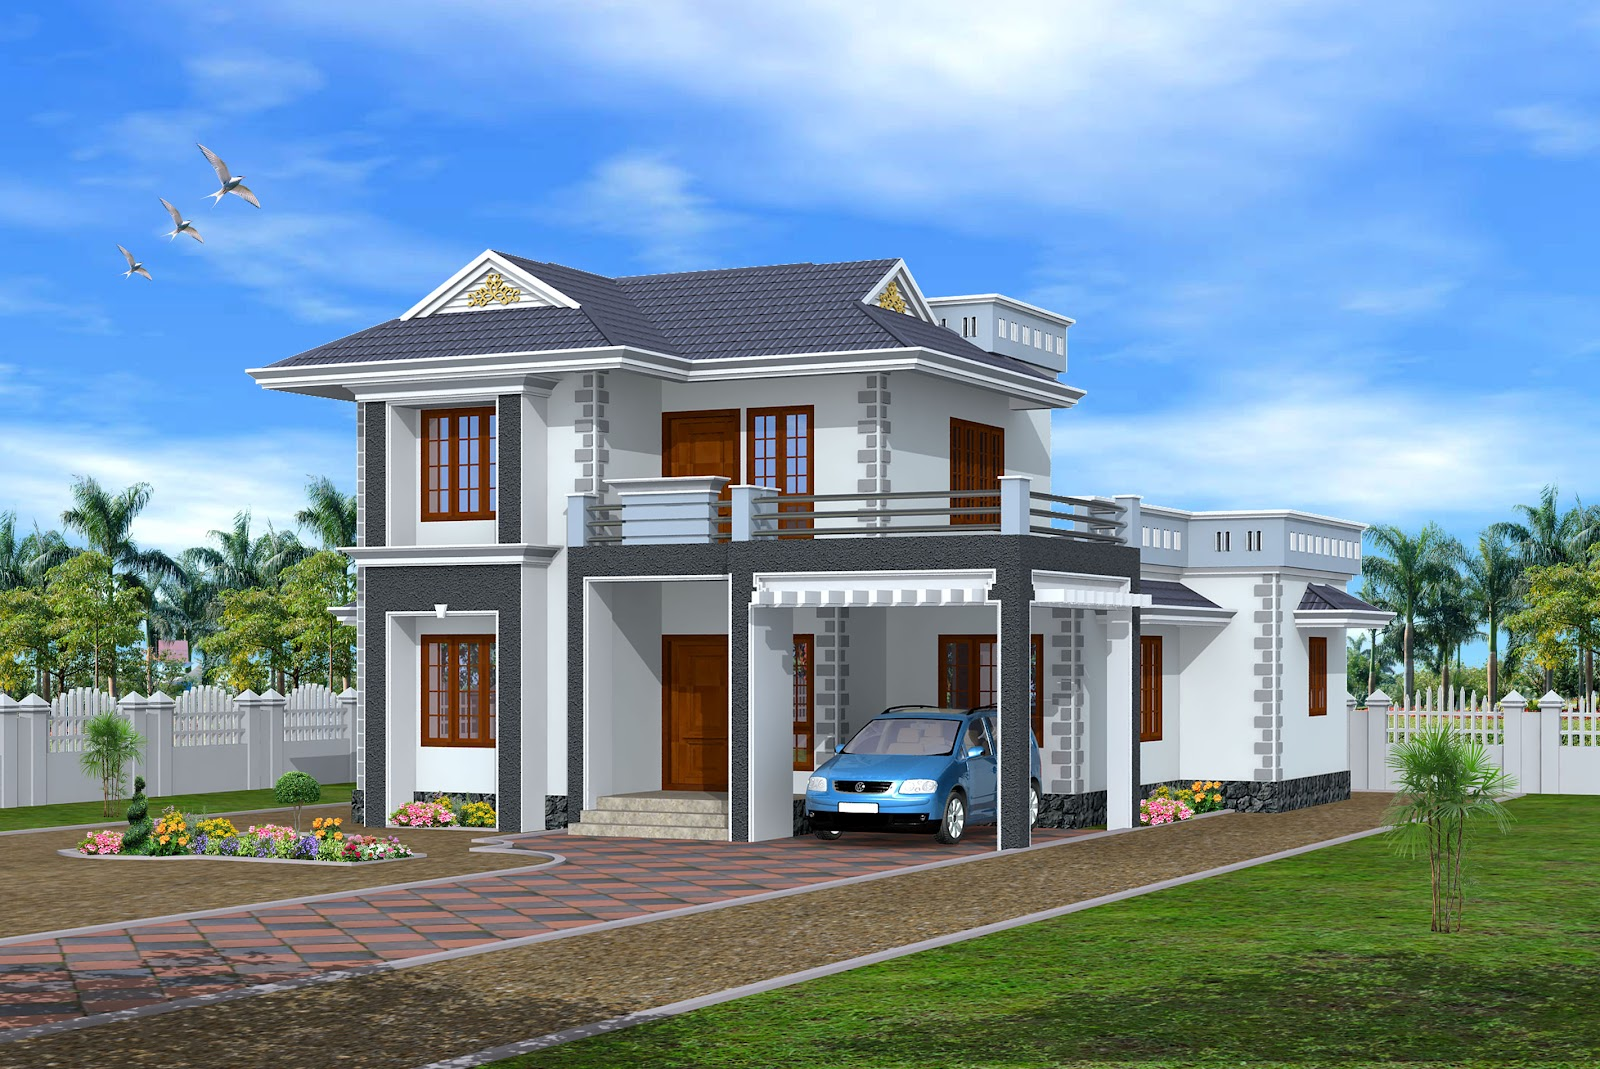 New home designs latest modern homes exterior designs views for Home front design model